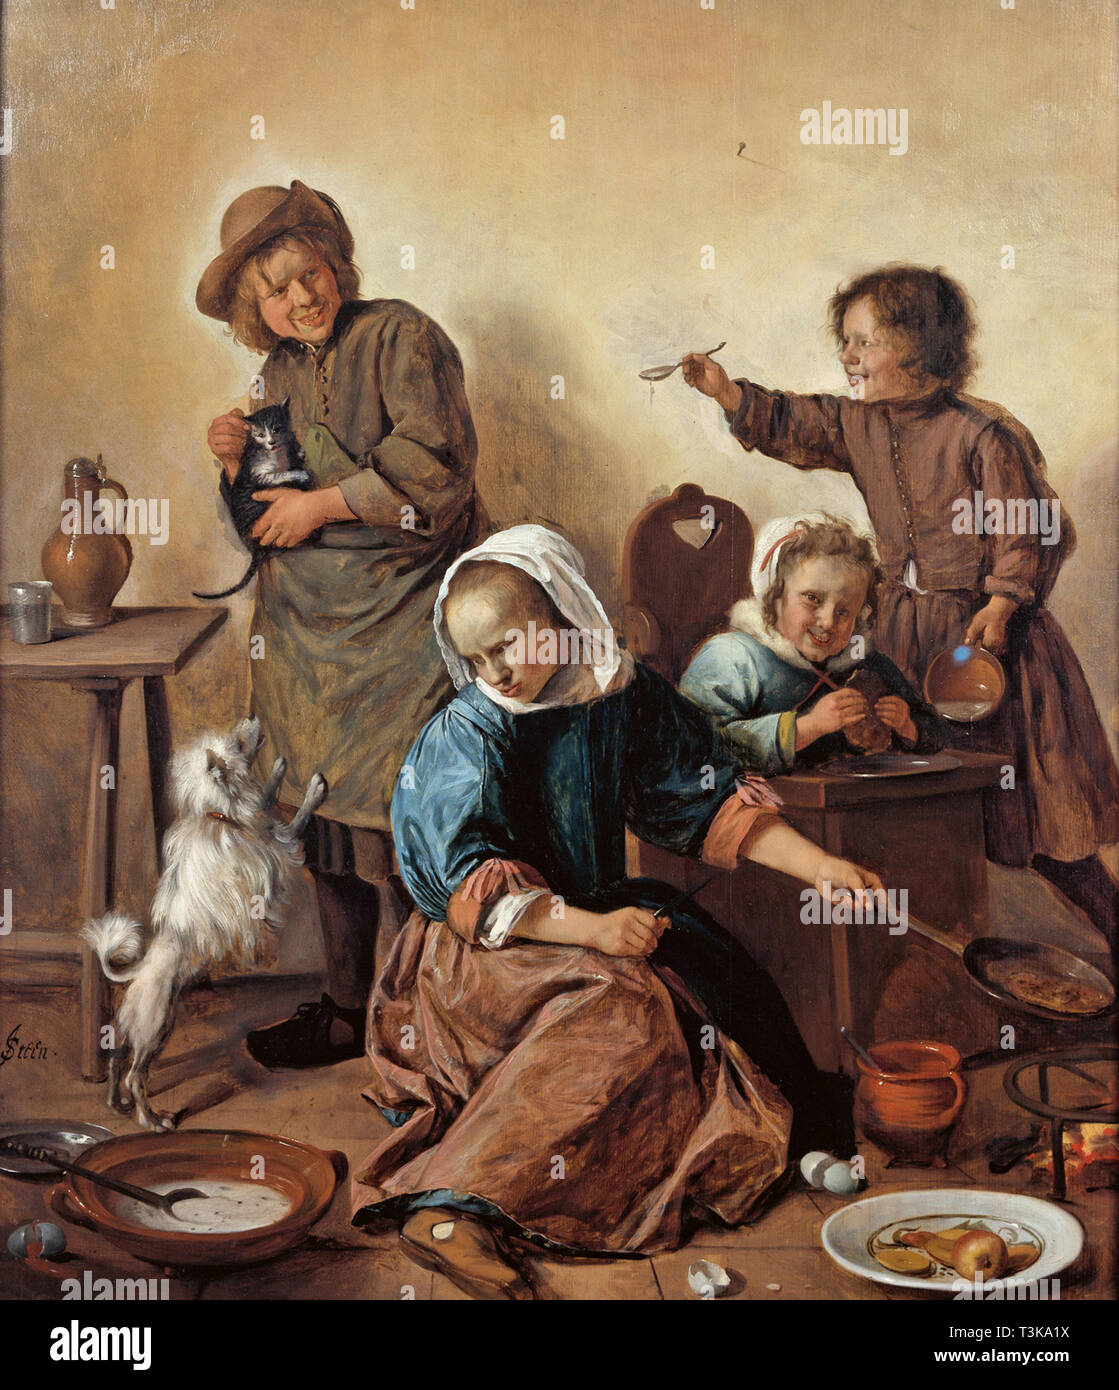 The Children's Meal, ca 1665. Found in the Collection of Nivaagaards Malerisamling. - Stock Image